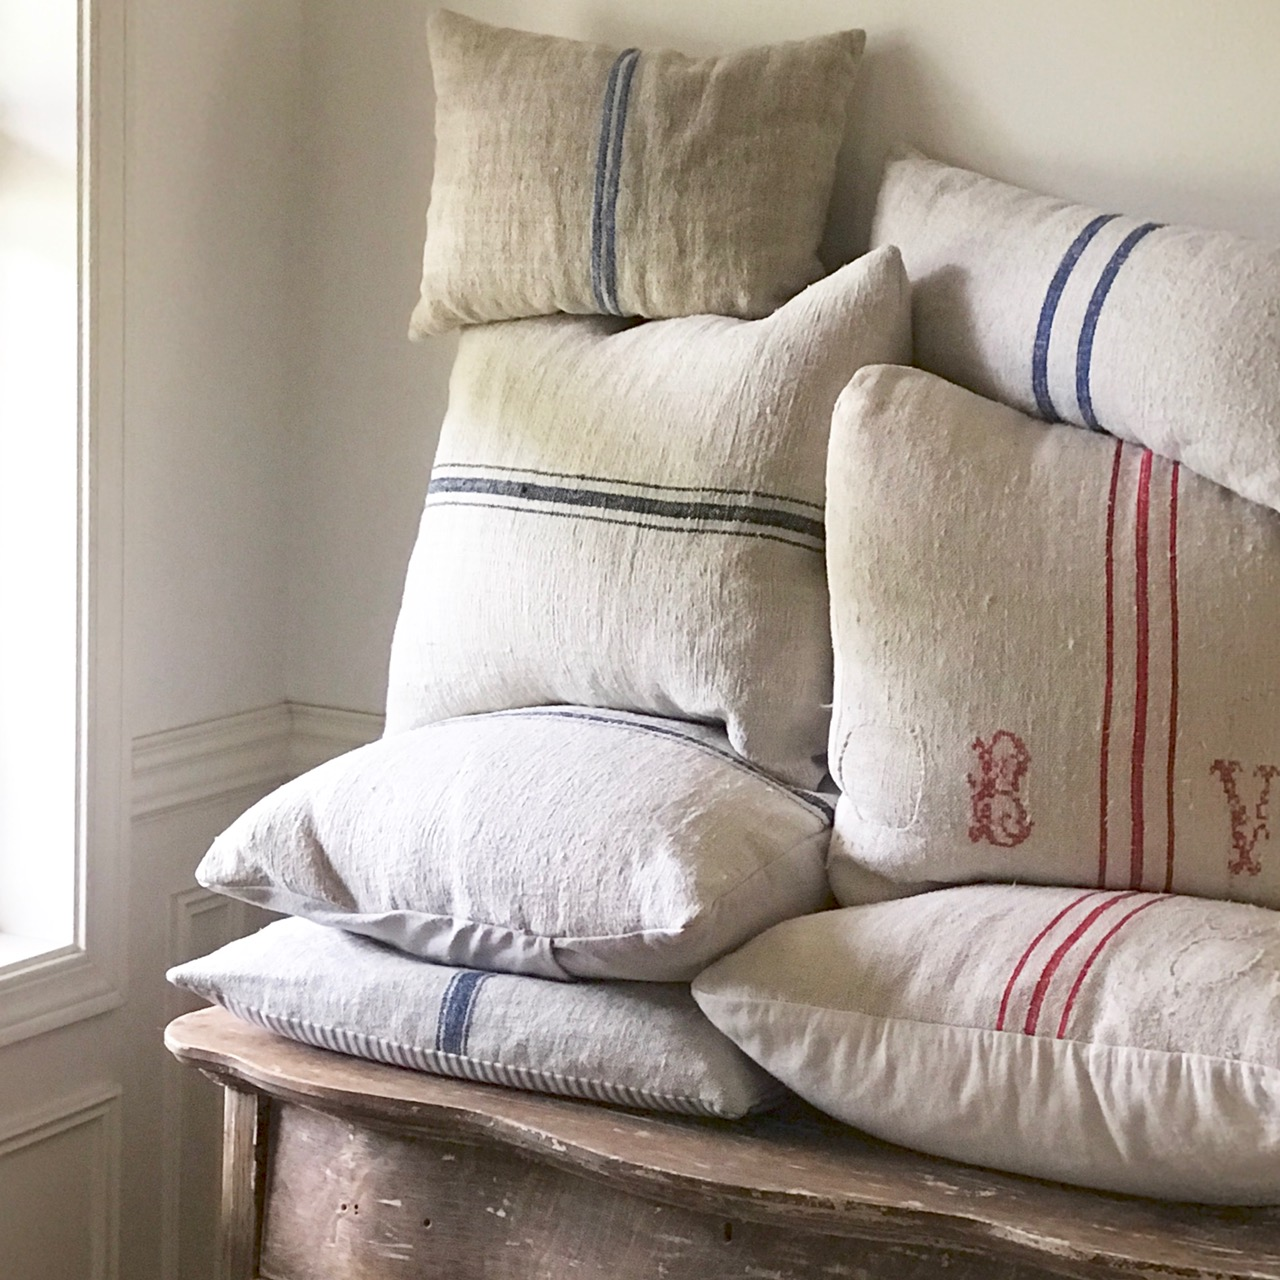 The Soft Colors And That Great Nubby Texture Of Grain Sacks Provide European Farmhouse Feel So Many Us Adore Part Charm